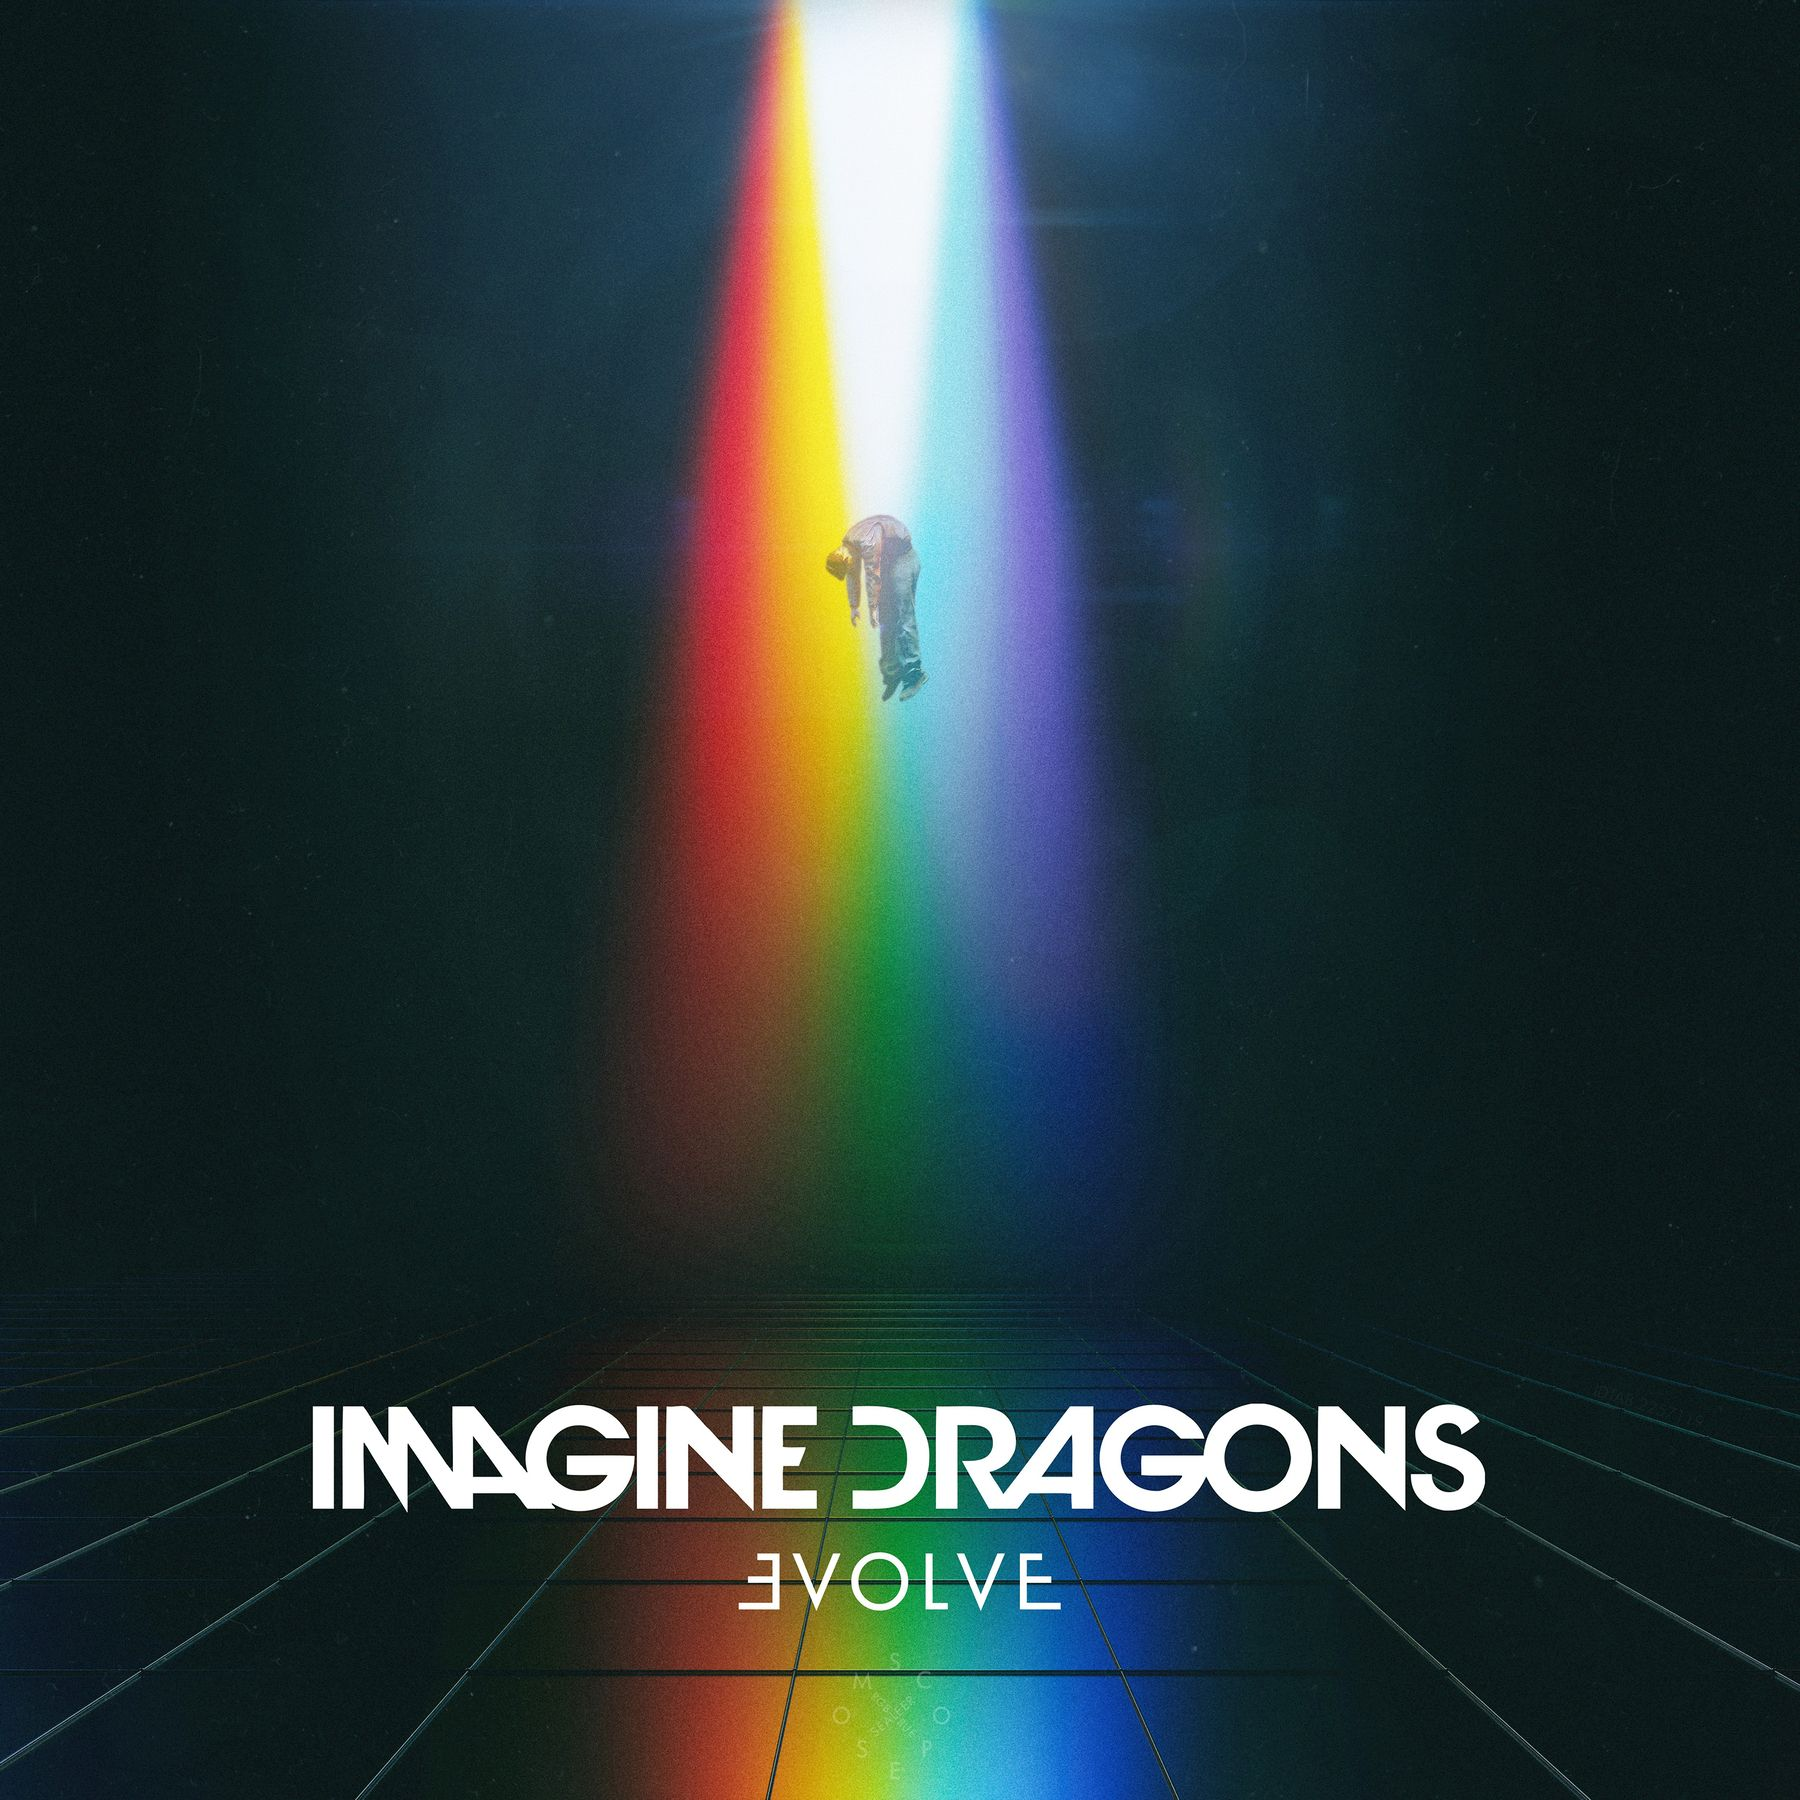 Imagine Dragons - Evolve album cover